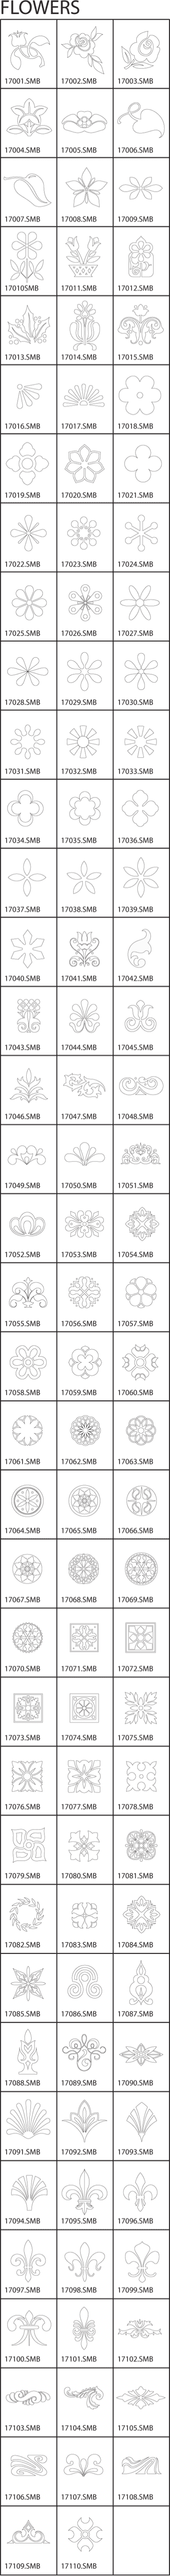 Flowers Clip-Art Gallery Chart